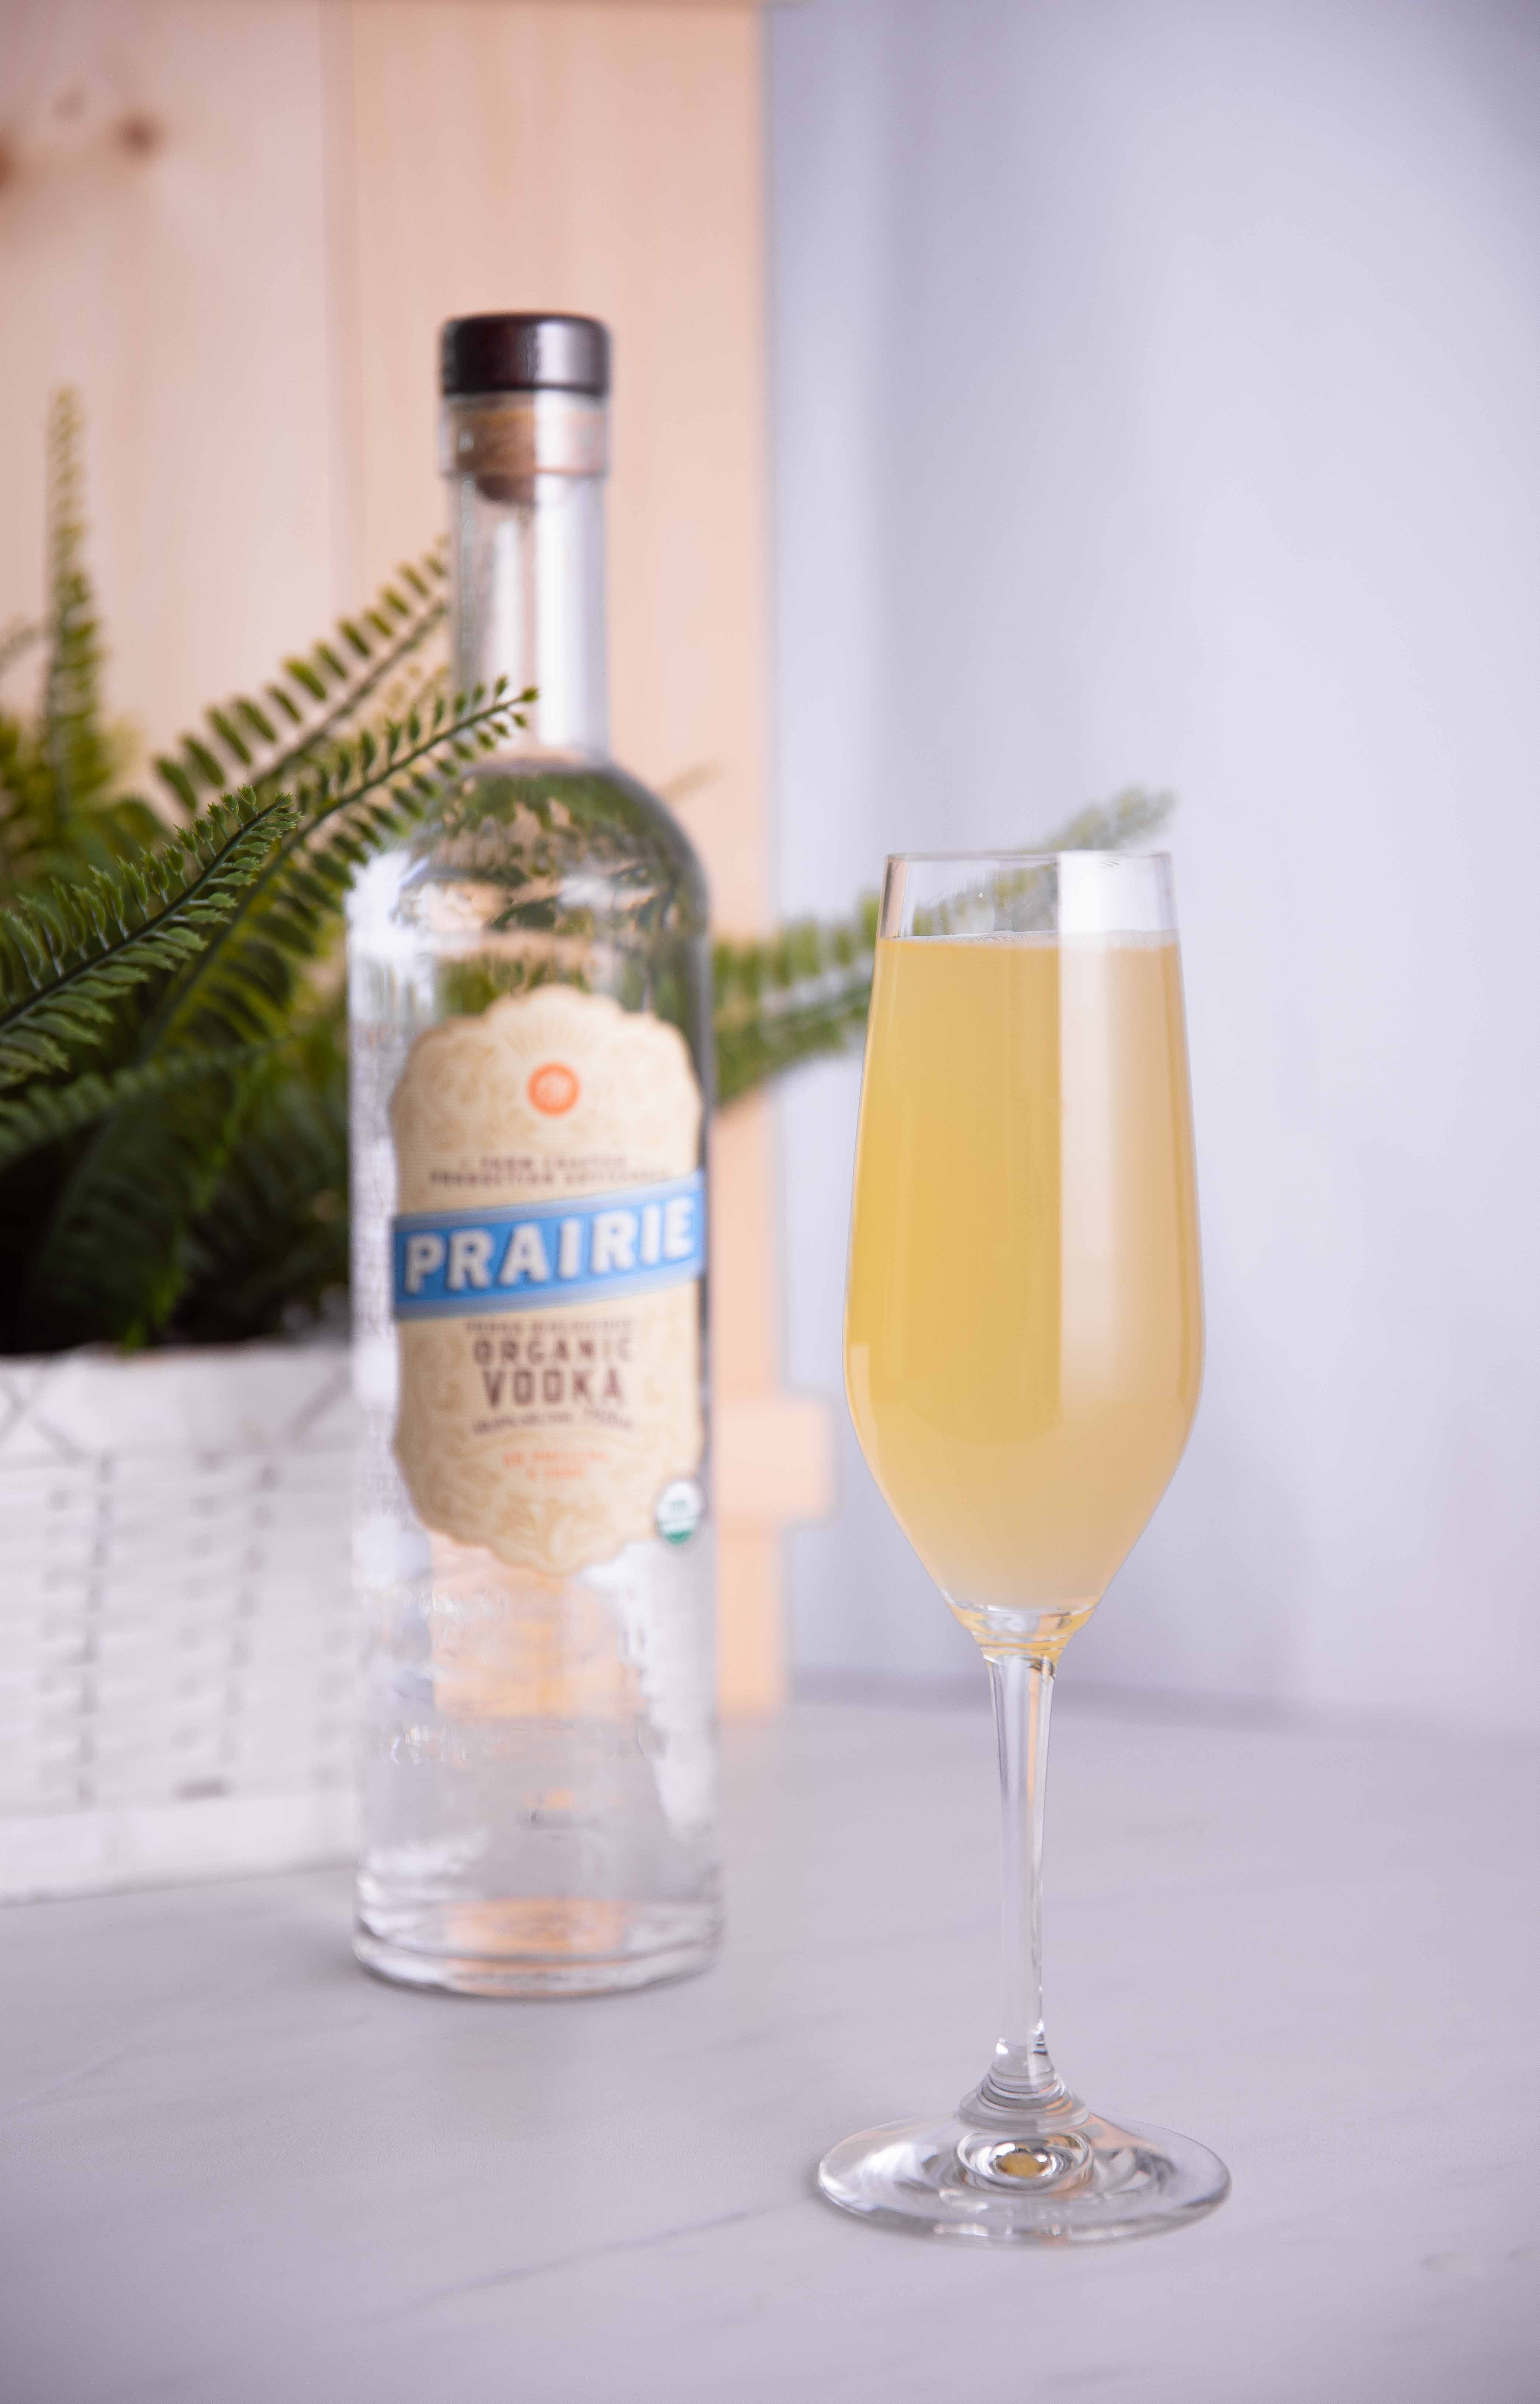 In Passionfruit We Trust – Passionfruit & Prairie Organic Vodka Bubbly Cocktail